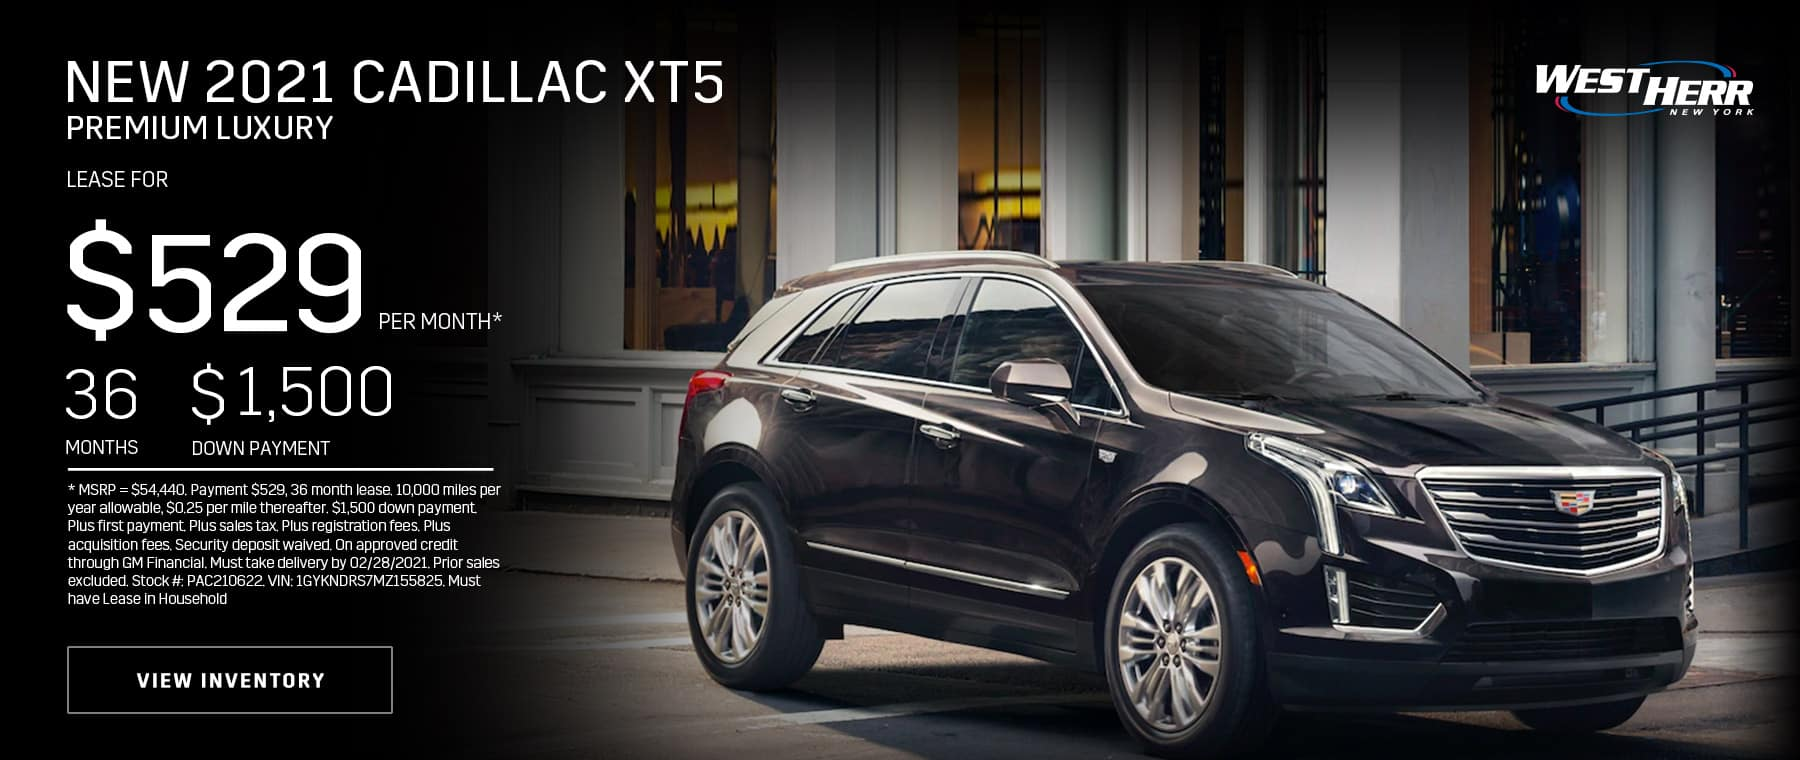 New 2021 Cadillac XT5 Premium Luxury: Lease for $529/mo for 36 months*